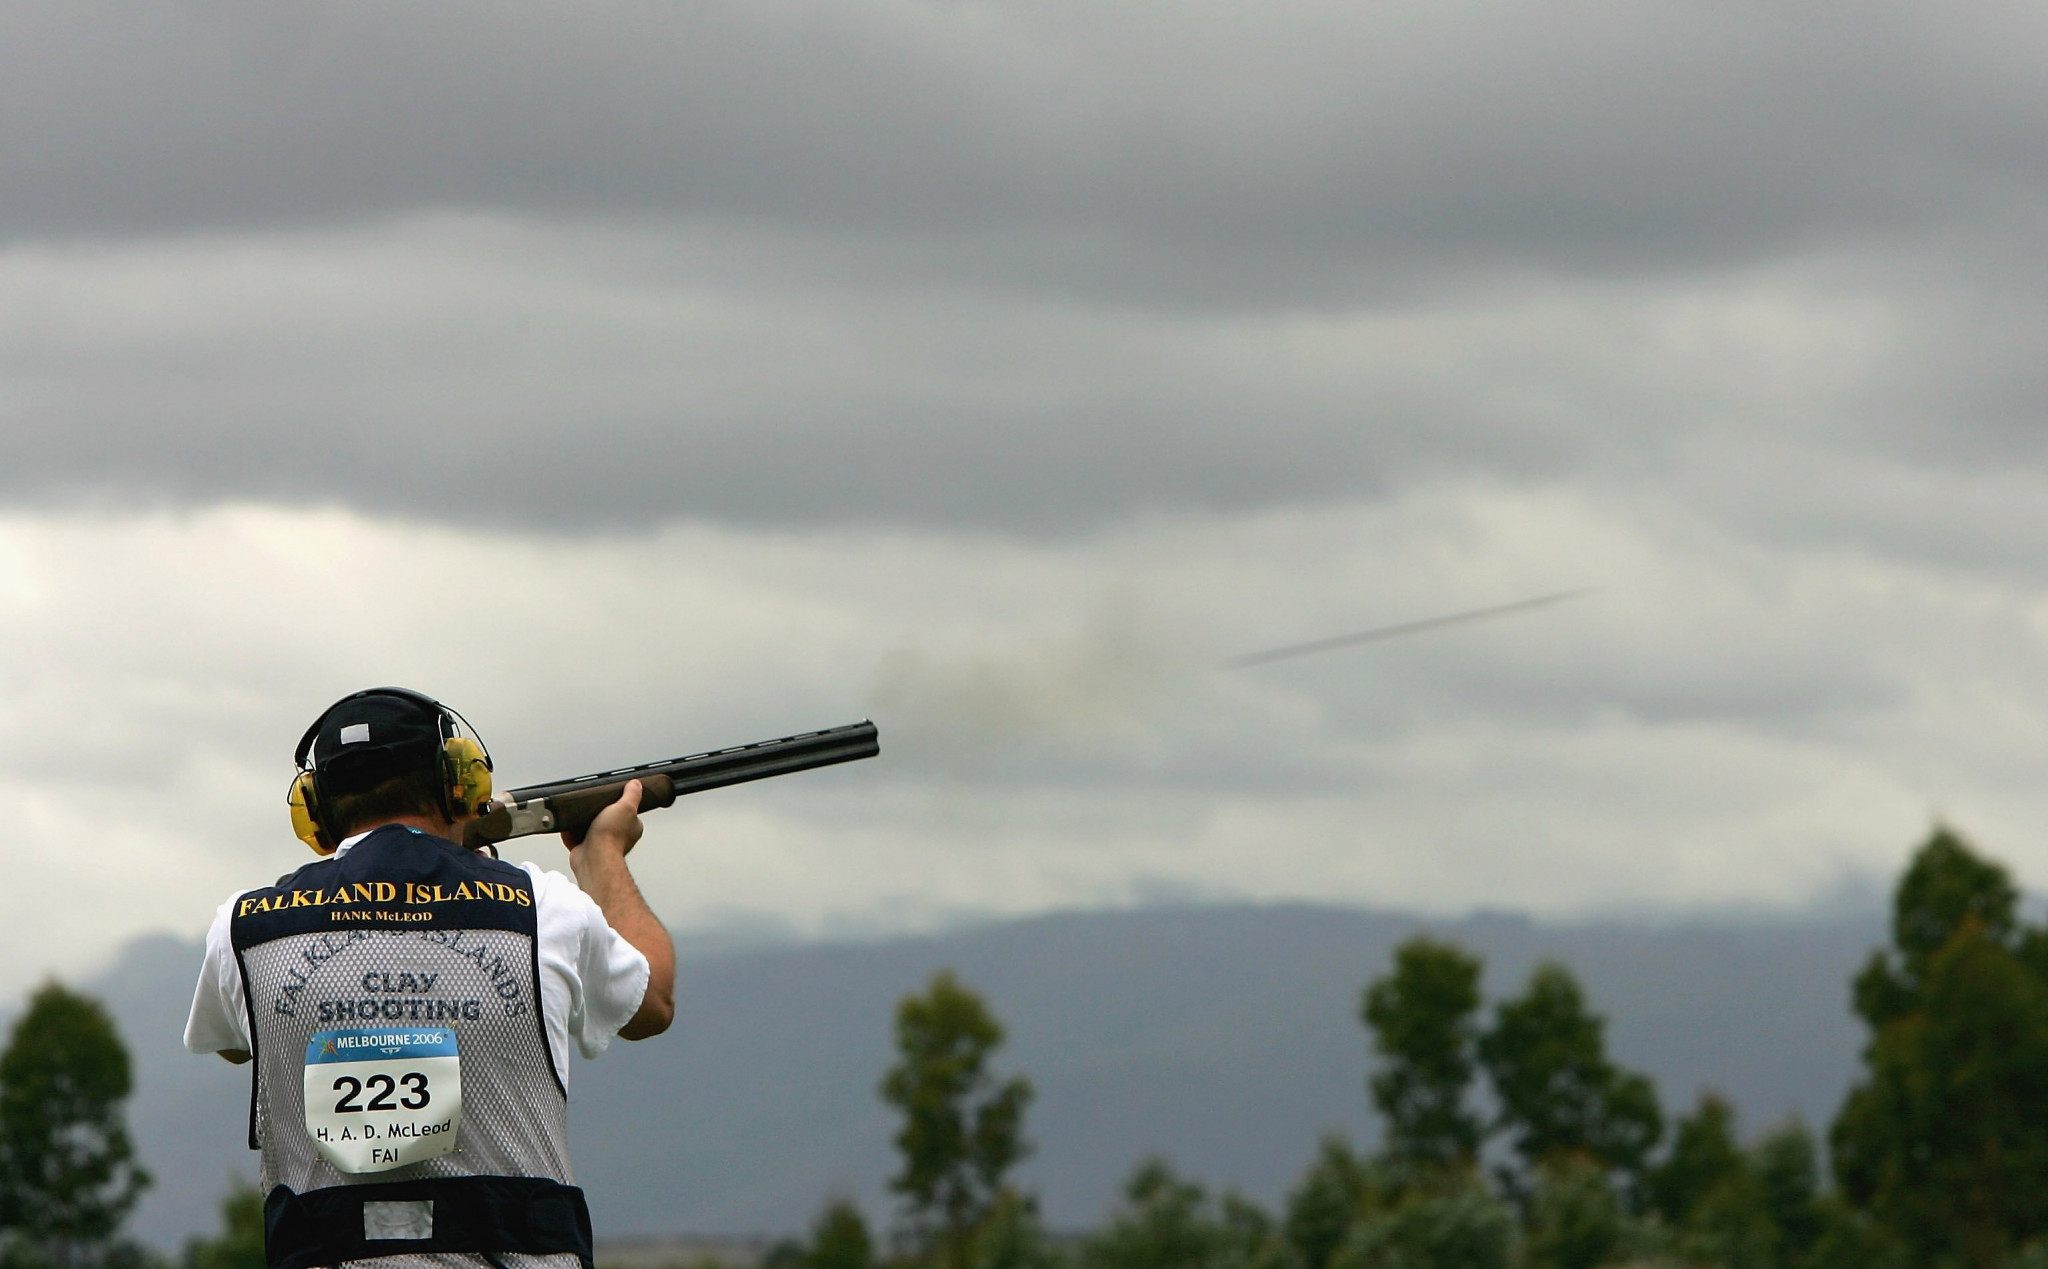 Falkland Islands sent 10 shooters to Gold Coast 2018, but the sport has been removed from the Commonwealth Games programme ©Getty Images